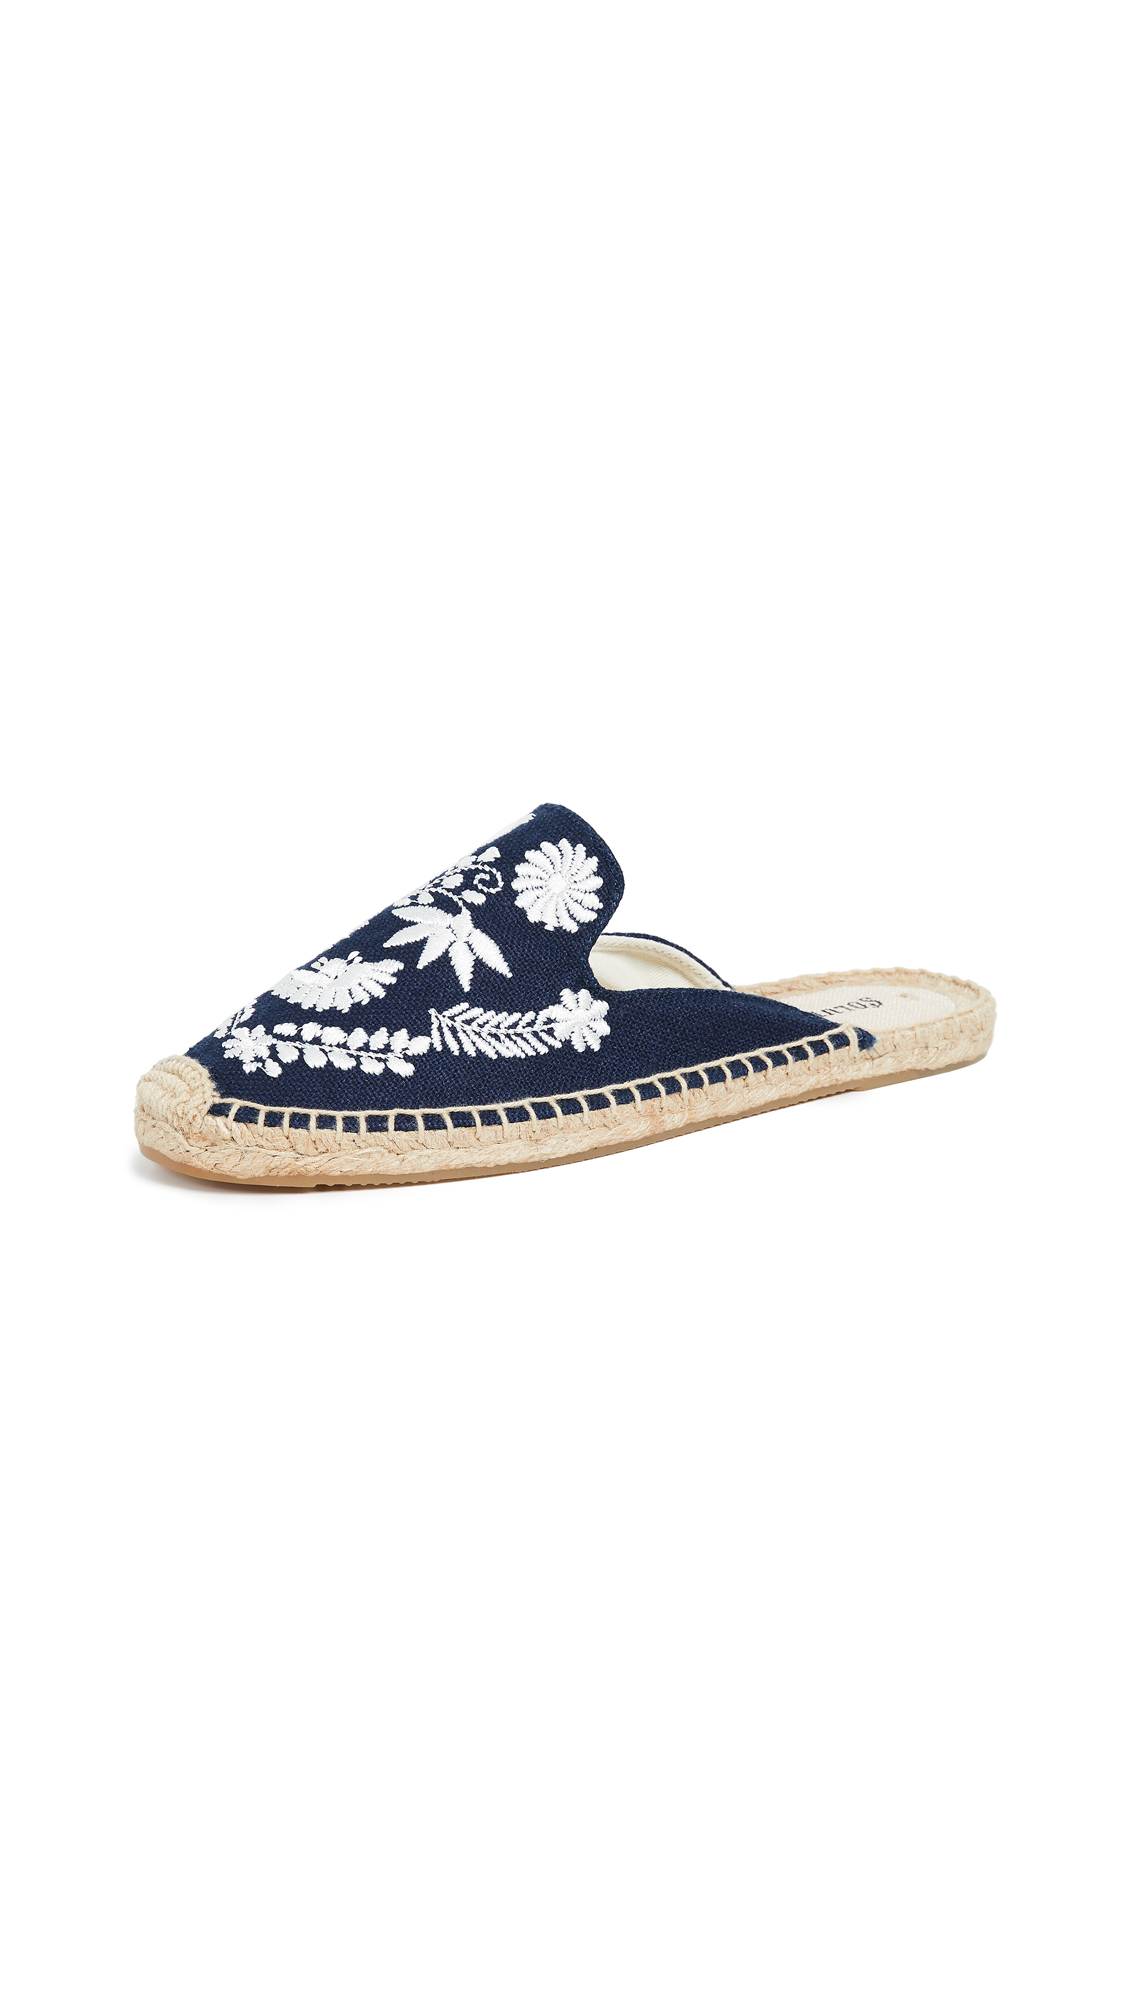 Soludos Ibiza Embroidered Mules - Midnight Blue